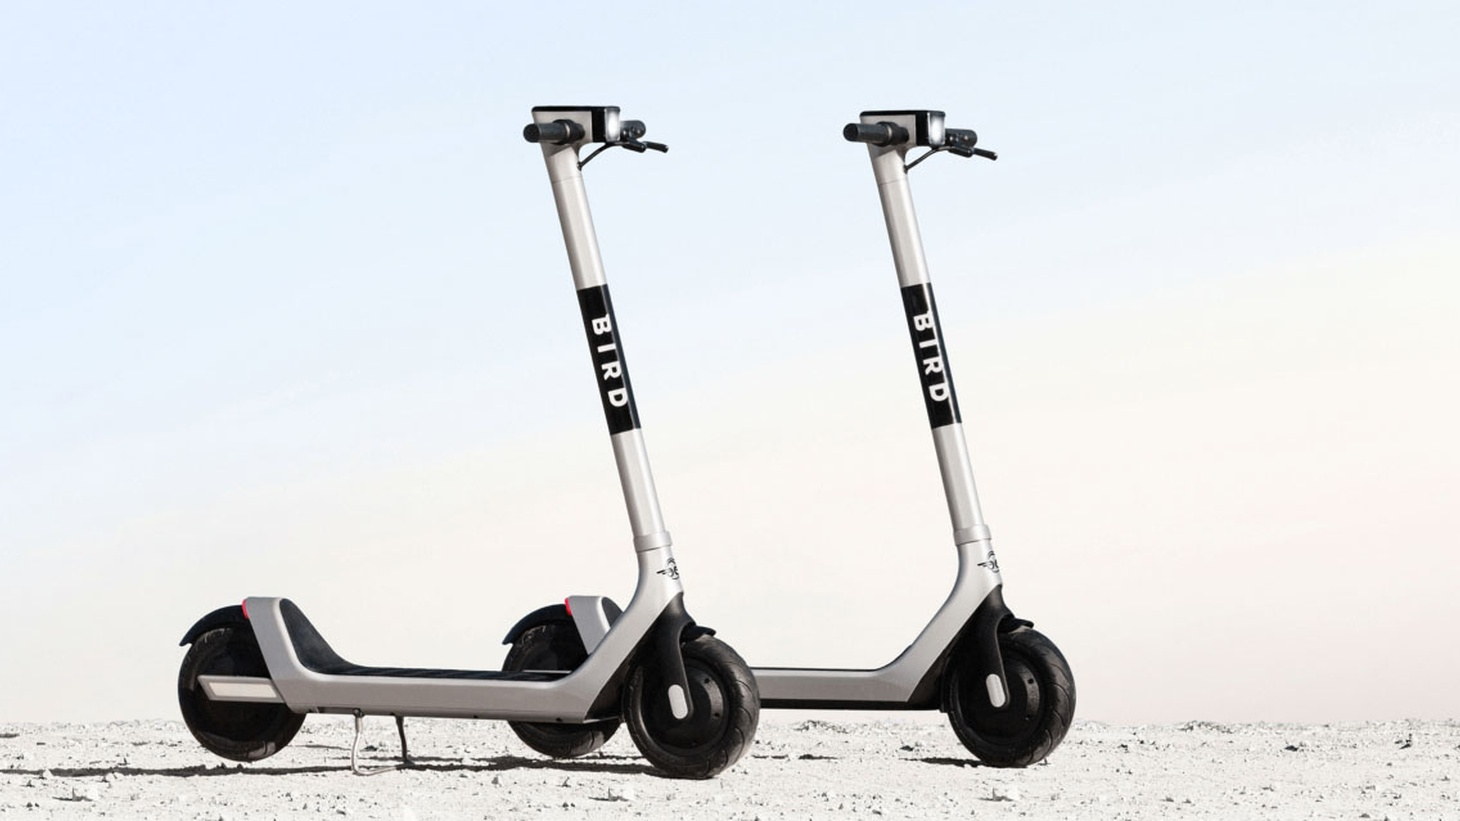 Bird Two, the latest model of e-scooter from the Santa Monica-based company.